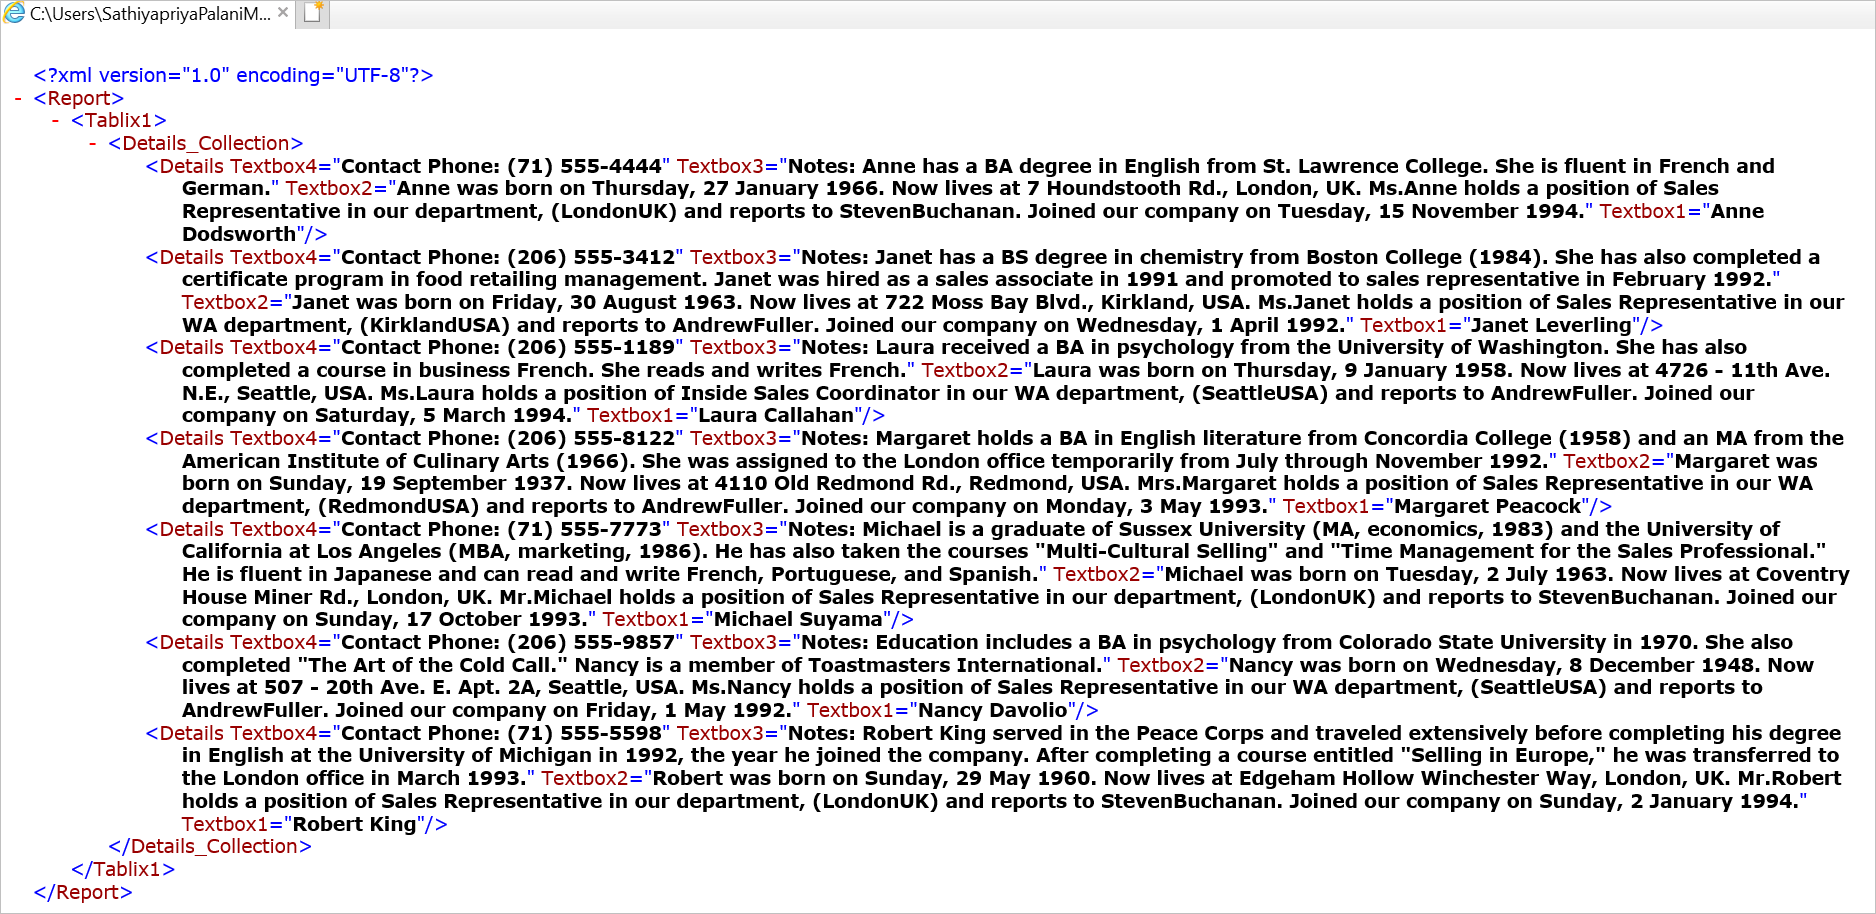 Exported XML document for the sample report above